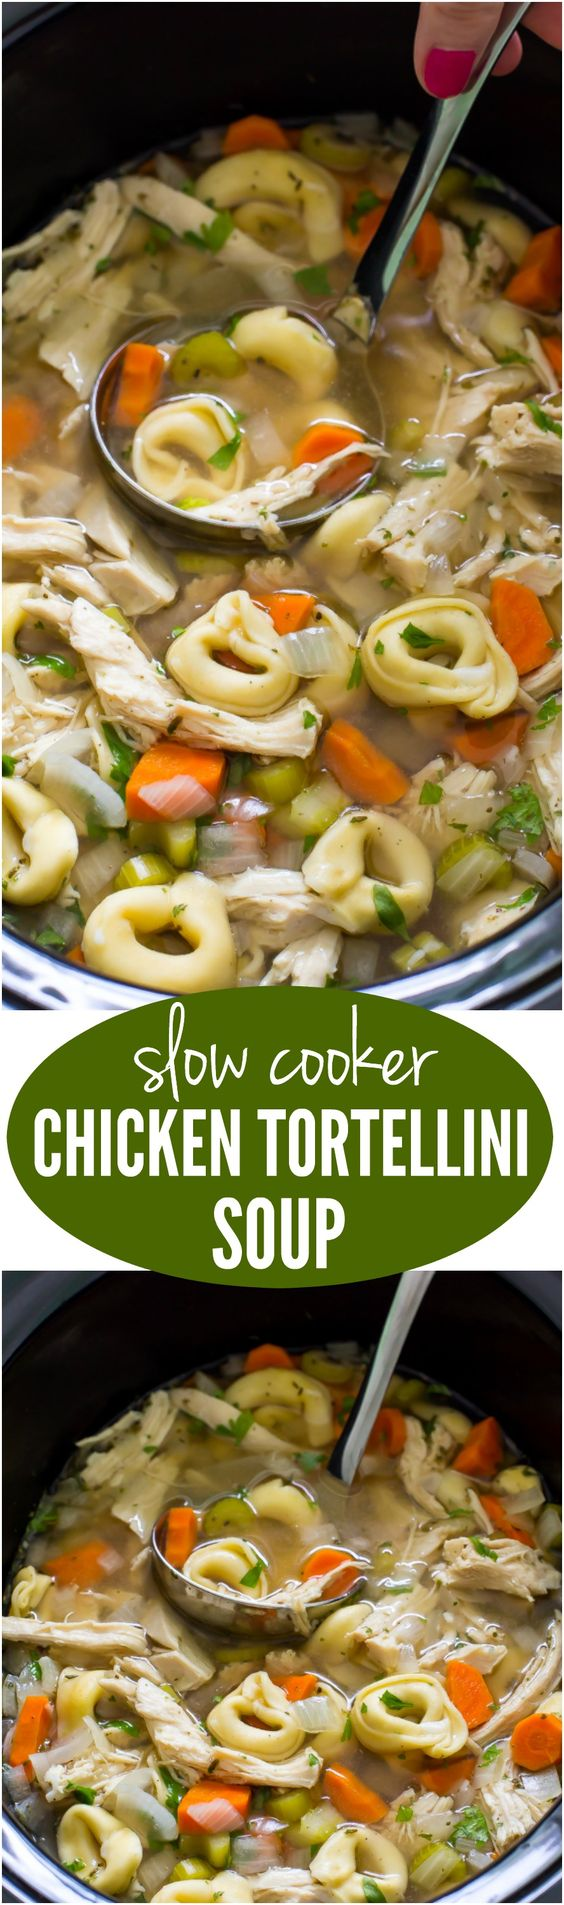 Super Easy Slow Cooker Chicken Tortellini Soup. Loaded with tons of veggies, shredded chicken and cheesy tortellini!: